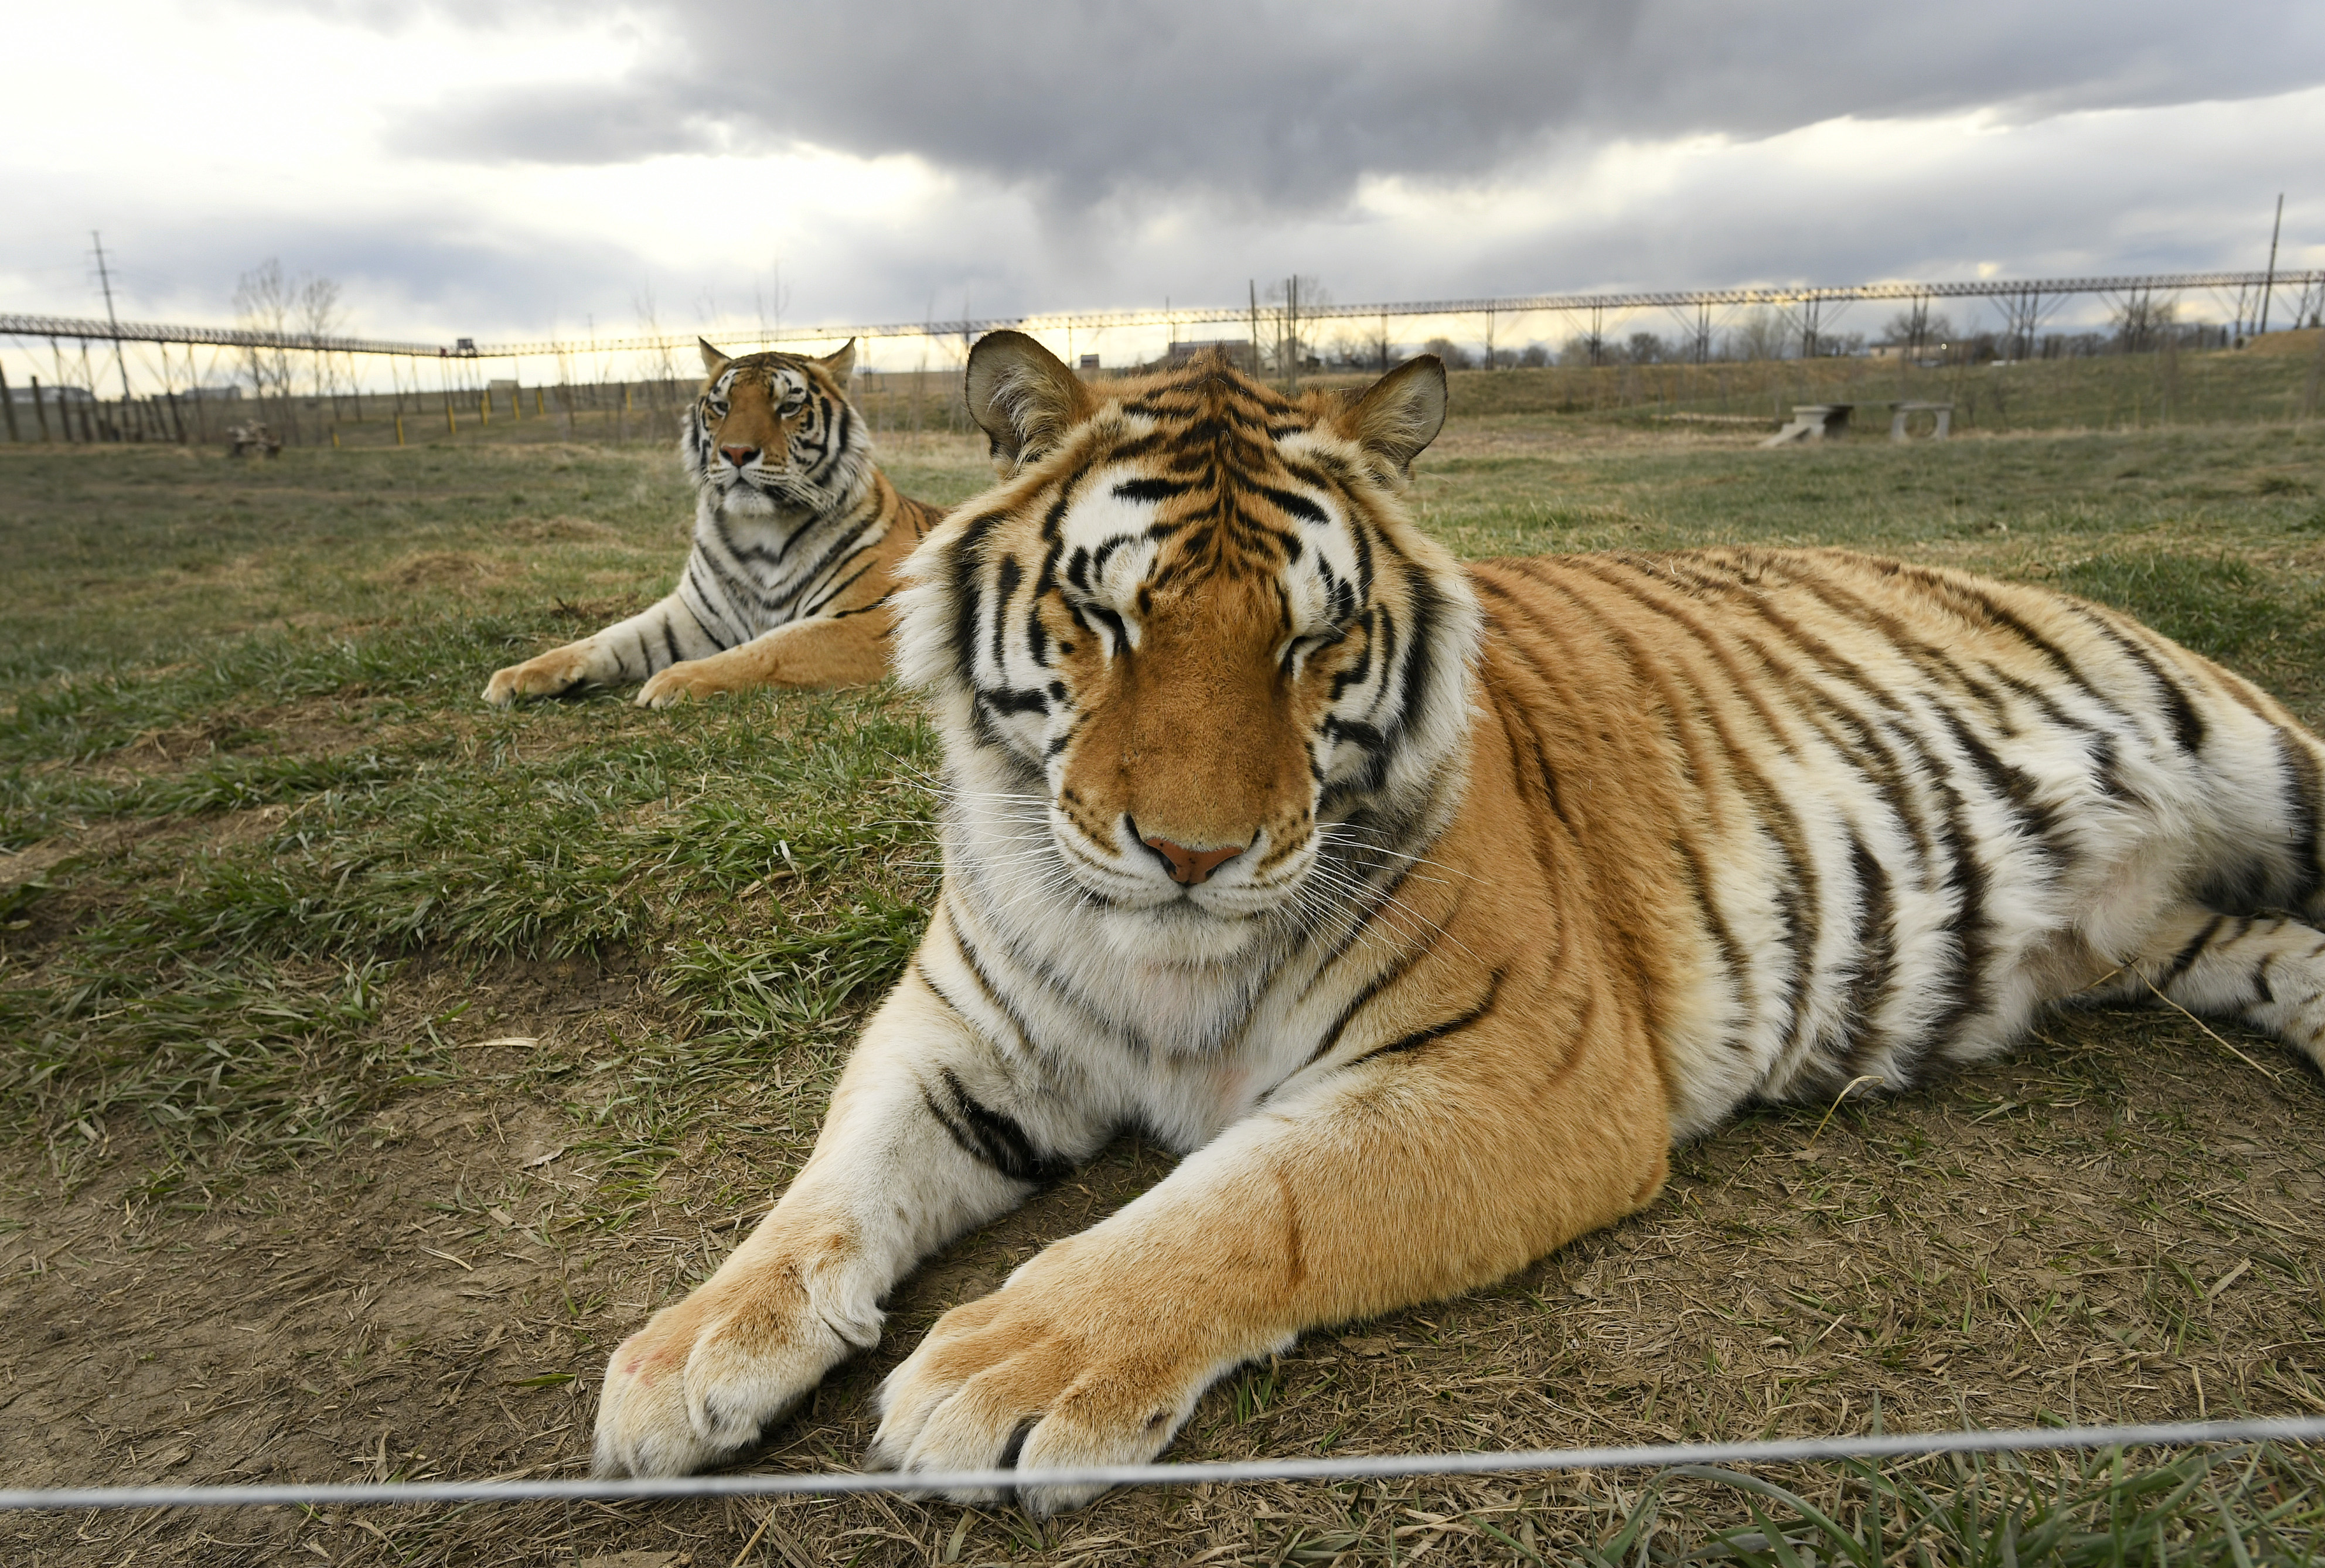 Tiger King is less fun when you actually think about the victims